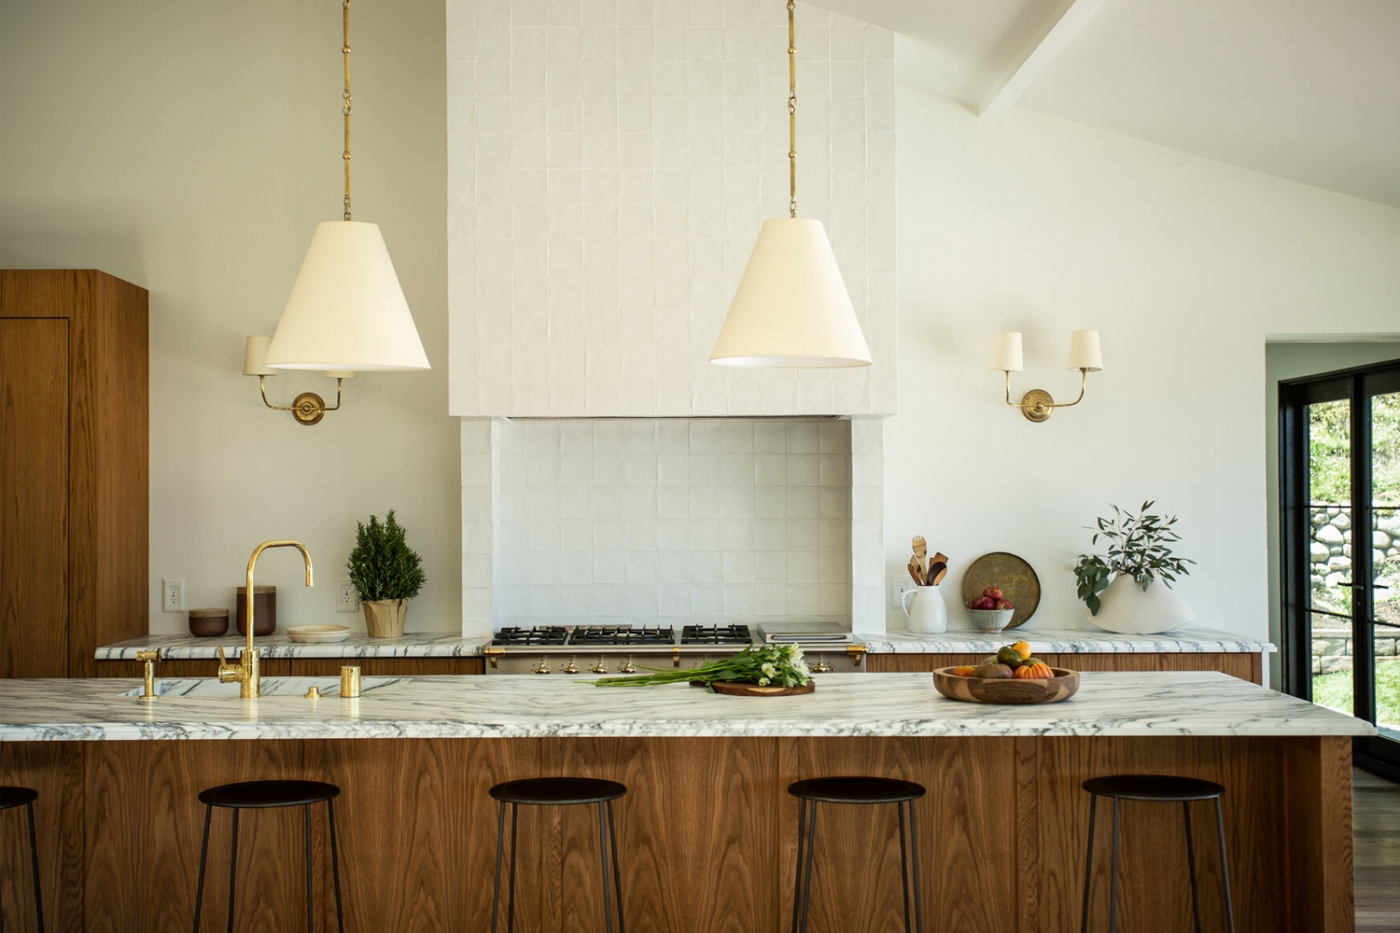 South European Style Inside A Mid-Century Home in Los Angeles - Interior Design by Tatum Kendrick mid-century home South European Style Inside A Mid-Century Home in Los Angeles – Interior Design by Tatum Kendrick feature 1400x933